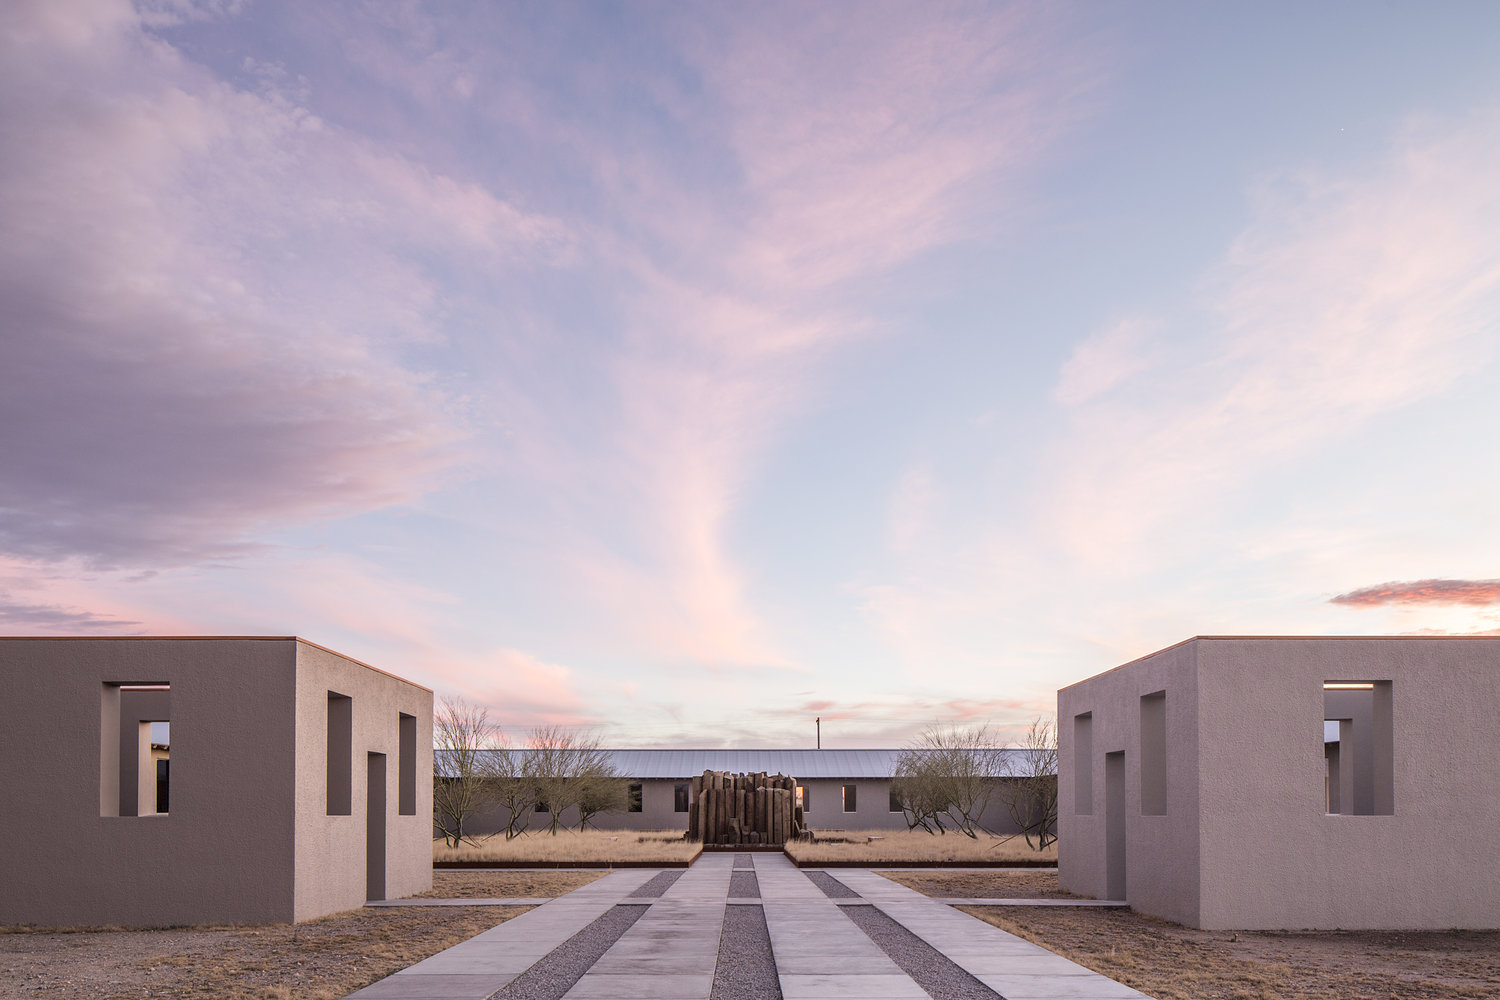 Robert Irwin,  untitled (dawn to dusk) , 2016. Photo by Alex Marks. Courtesy of the Chinati Foundation and Robert Irwin.